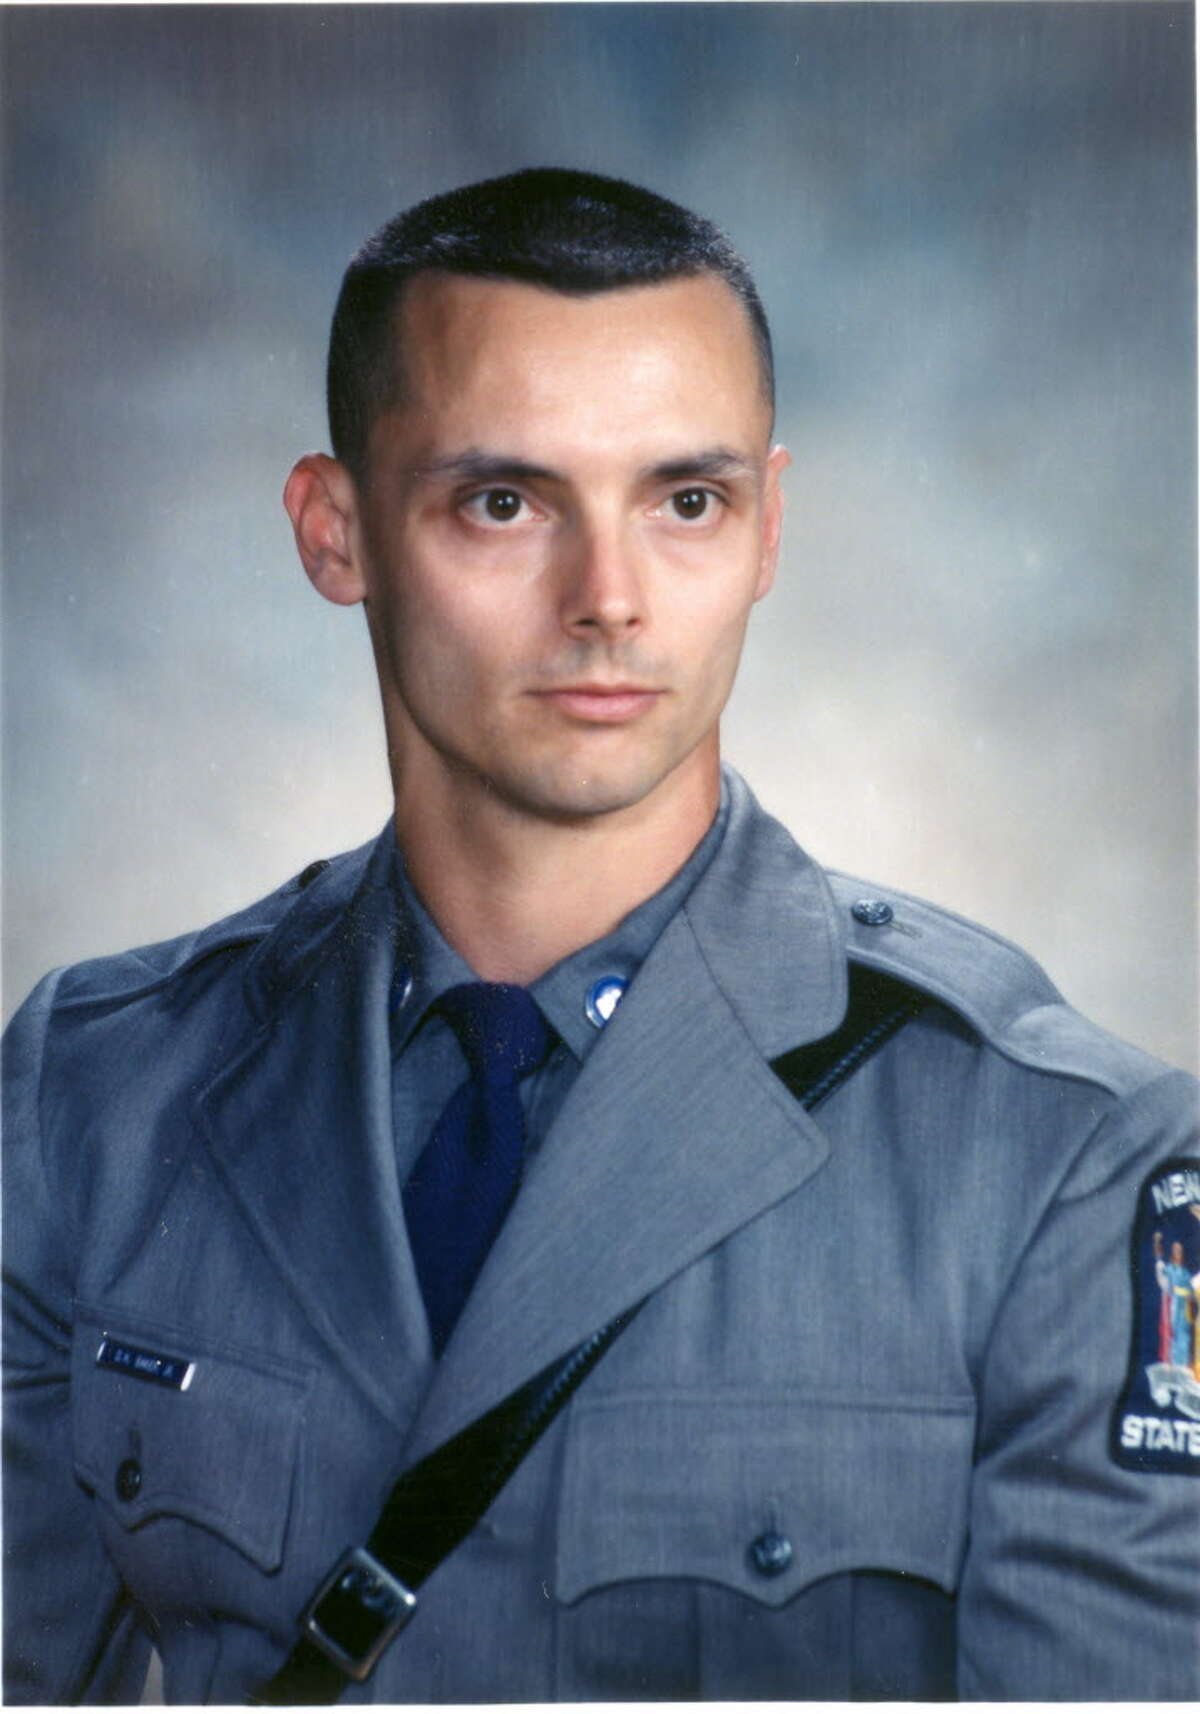 Trooper Donald Baker Jr., who was assigned to the Troop G Loudonville barracks, was shot by Ralph